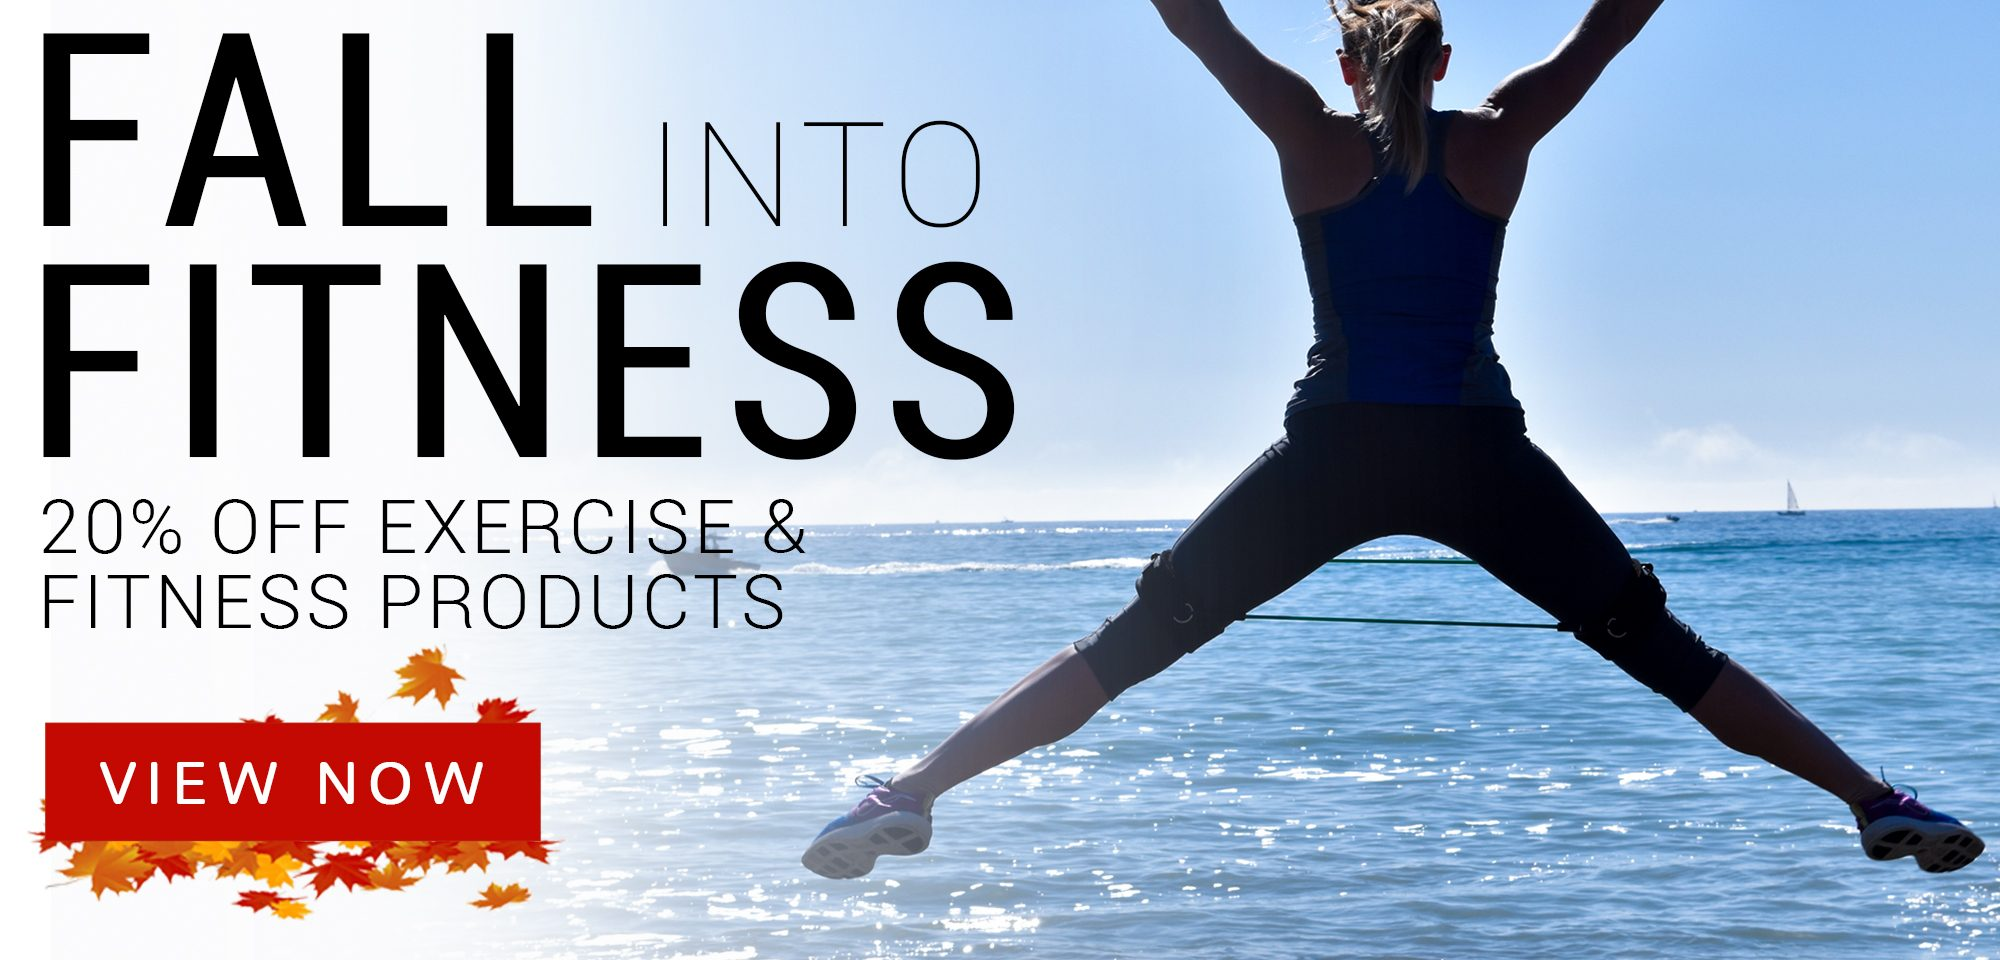 Fall Into Fitness - Save 20% now on Exercise & Fitness Products - View Now